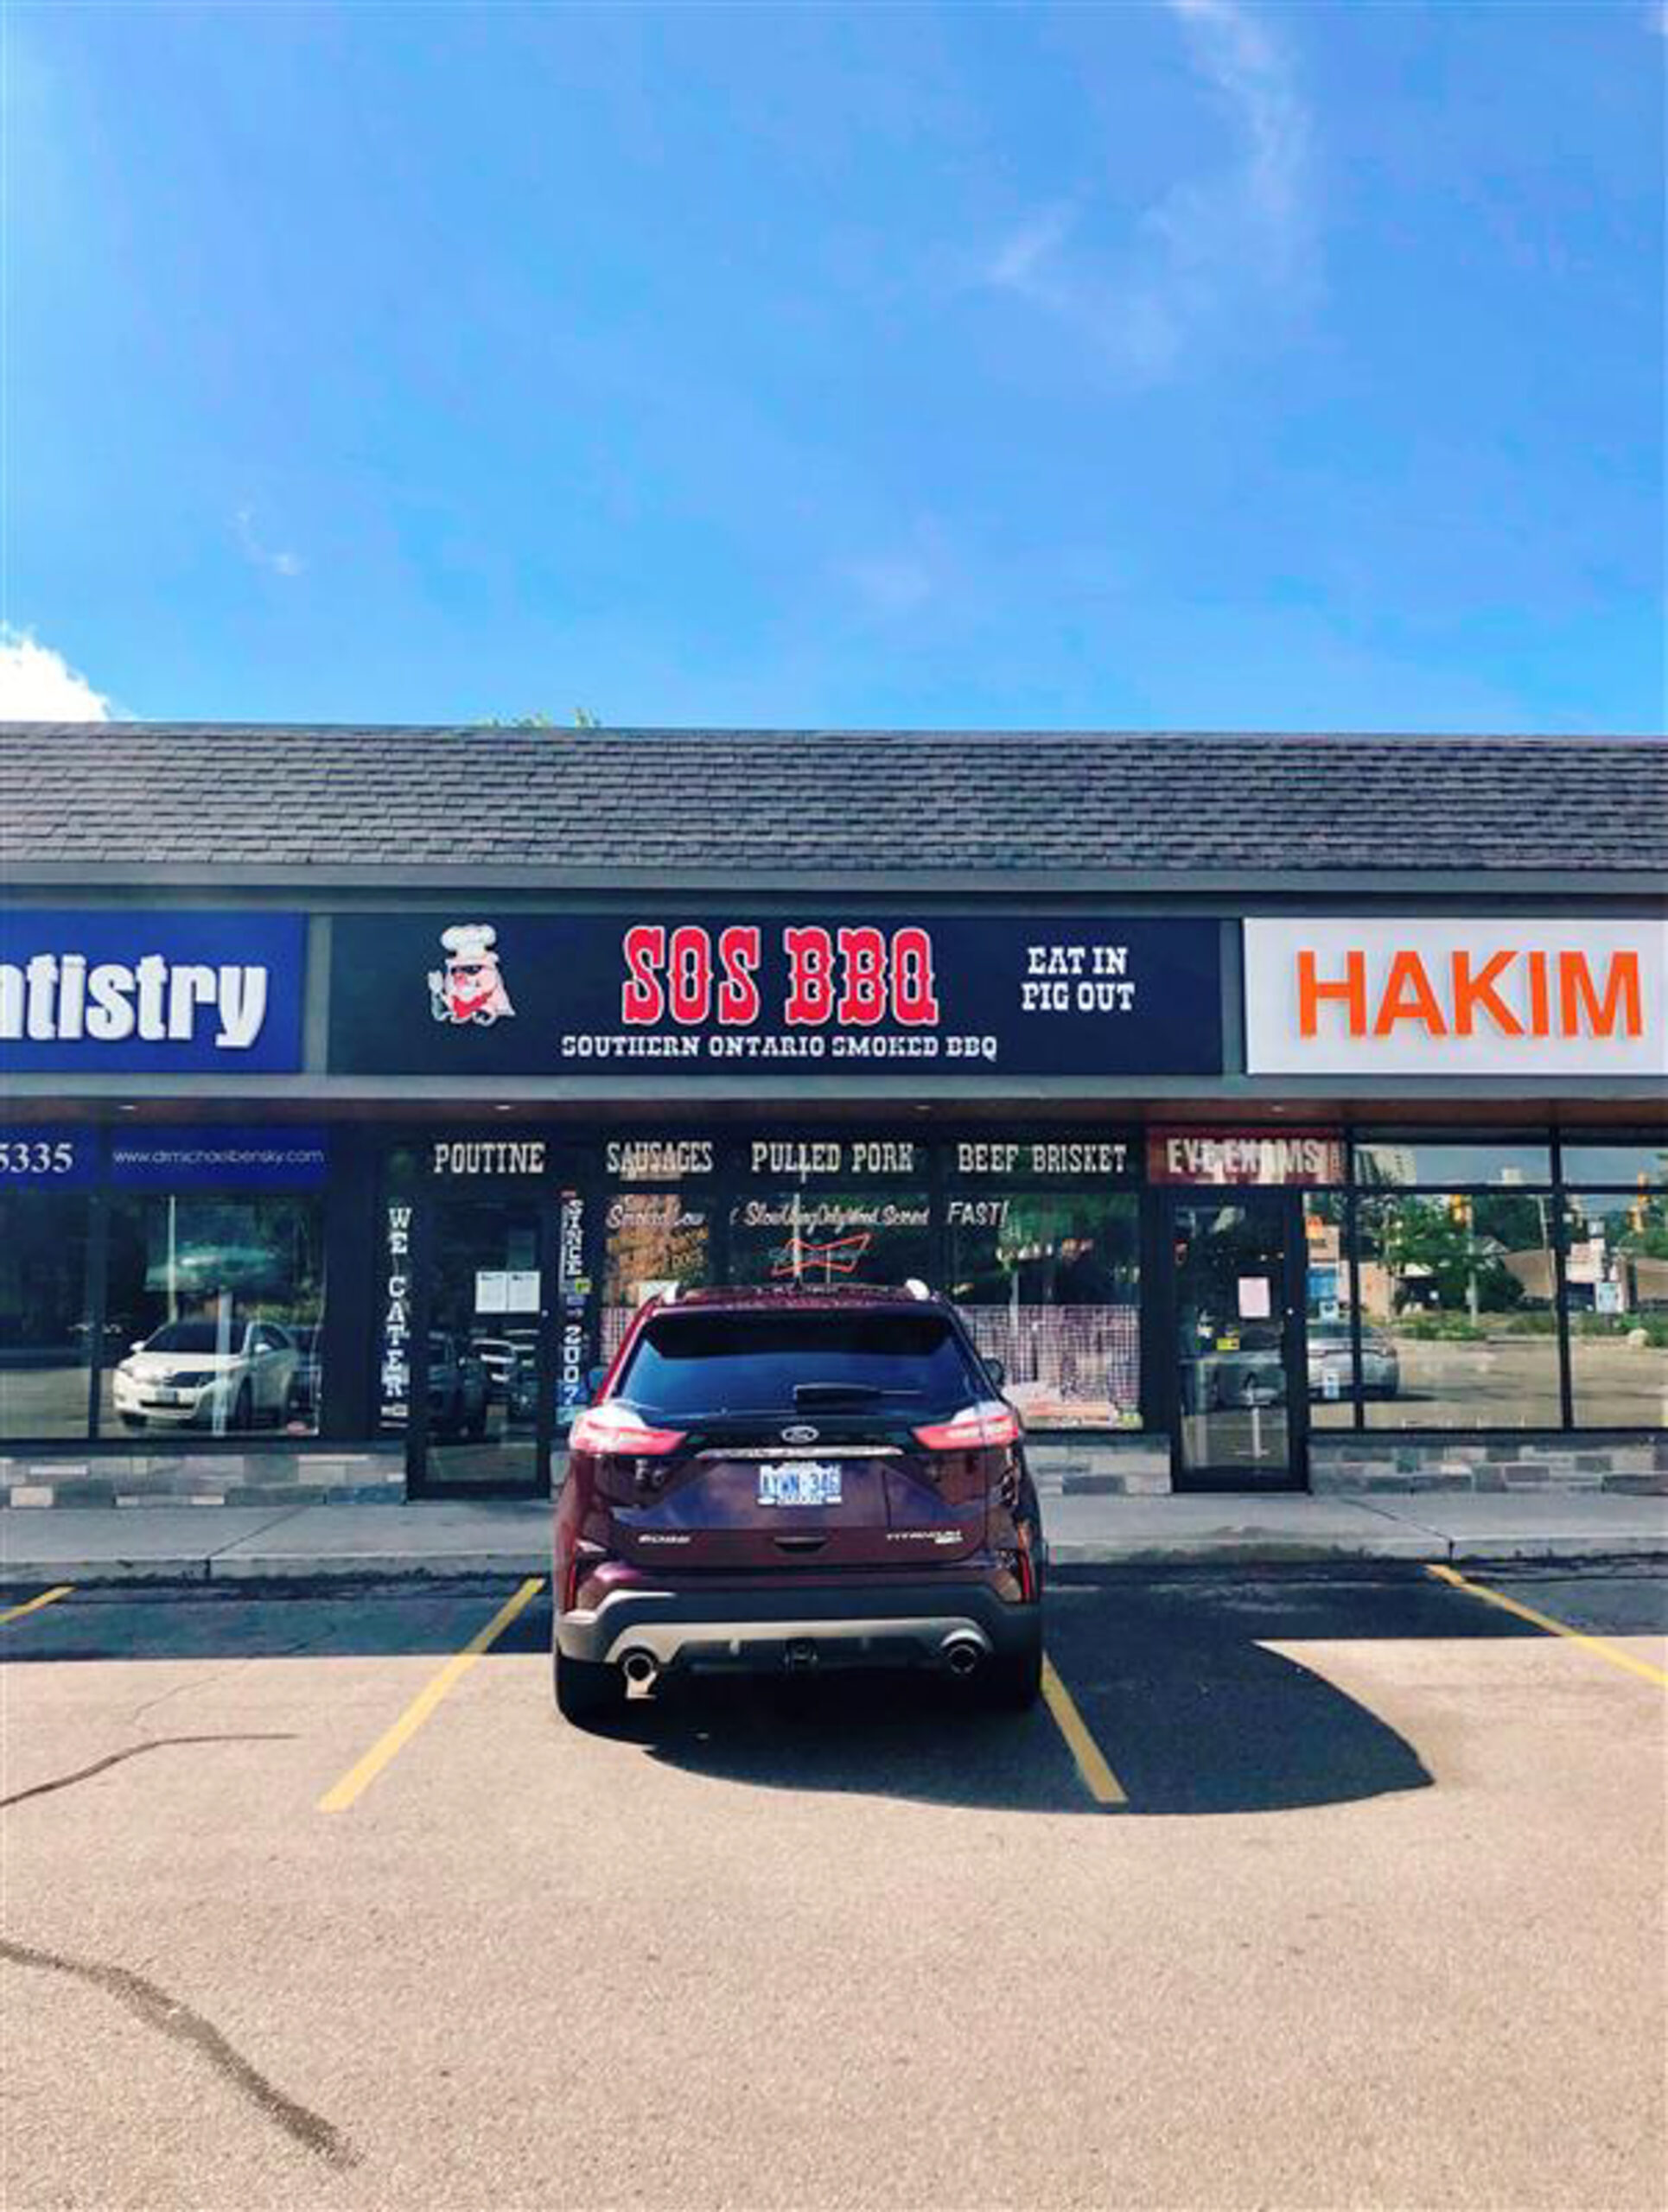 525 Highland Rd W (Unit 8), Kitchener | SOS BBQ Business for Sale